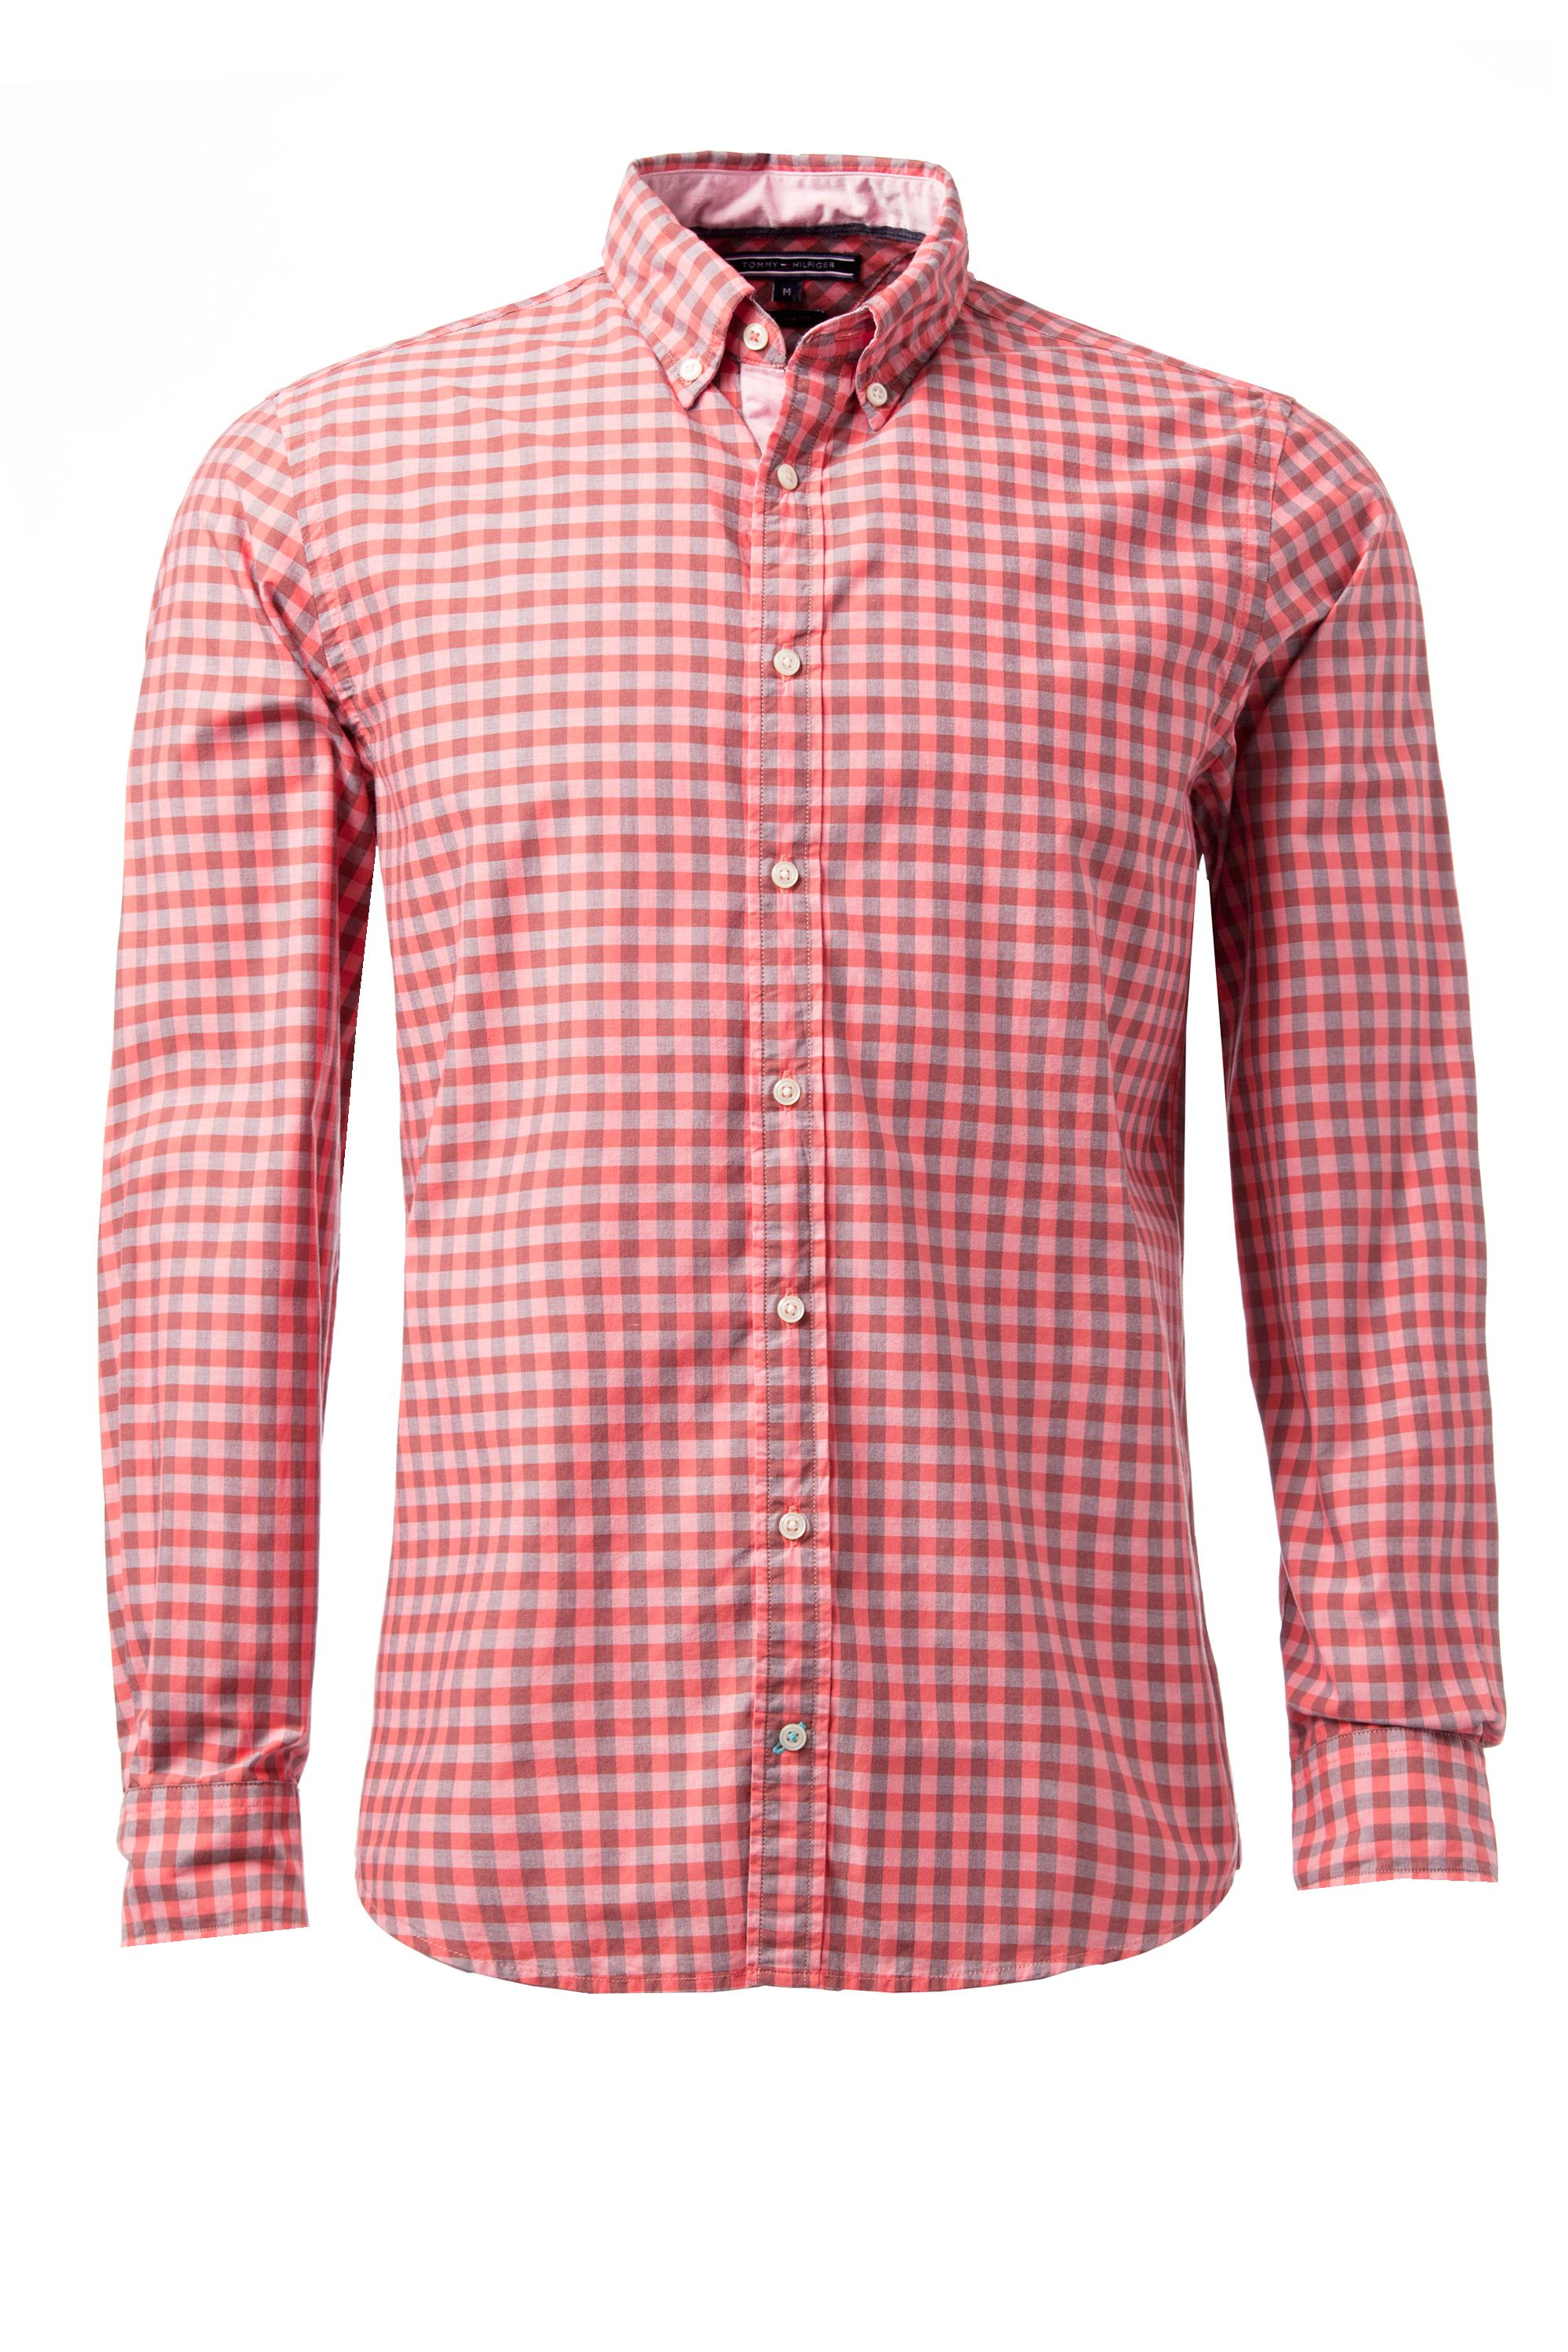 Tommy Hilfiger Koby Gingham Long Sleeve Shirt In Pink For